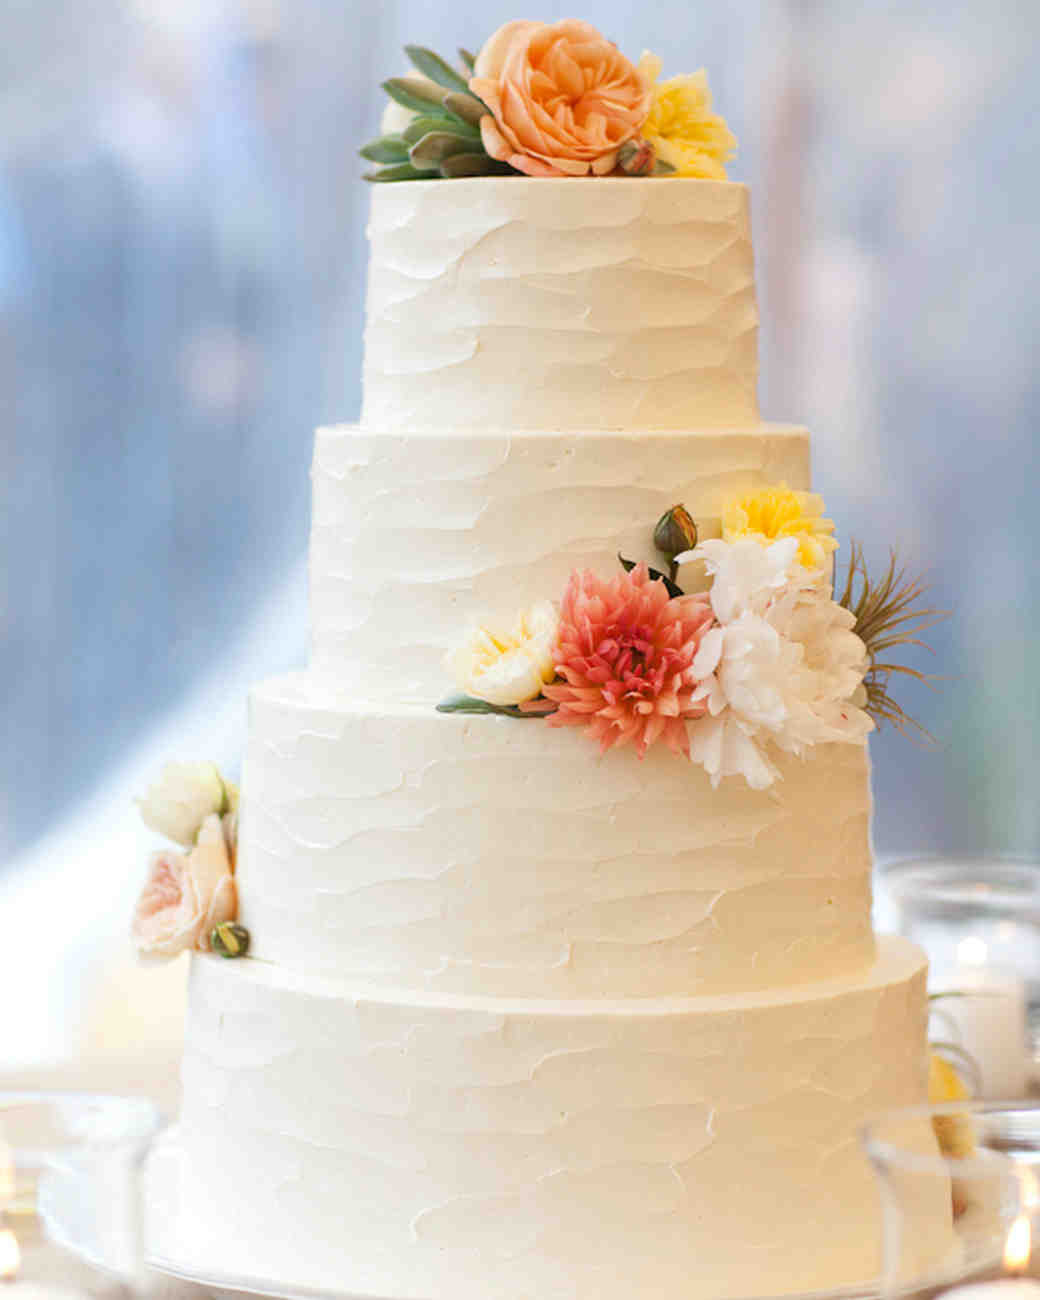 Wedding Cakes With Buttercream Frosting  104 White Wedding Cakes That Make the Case for Going